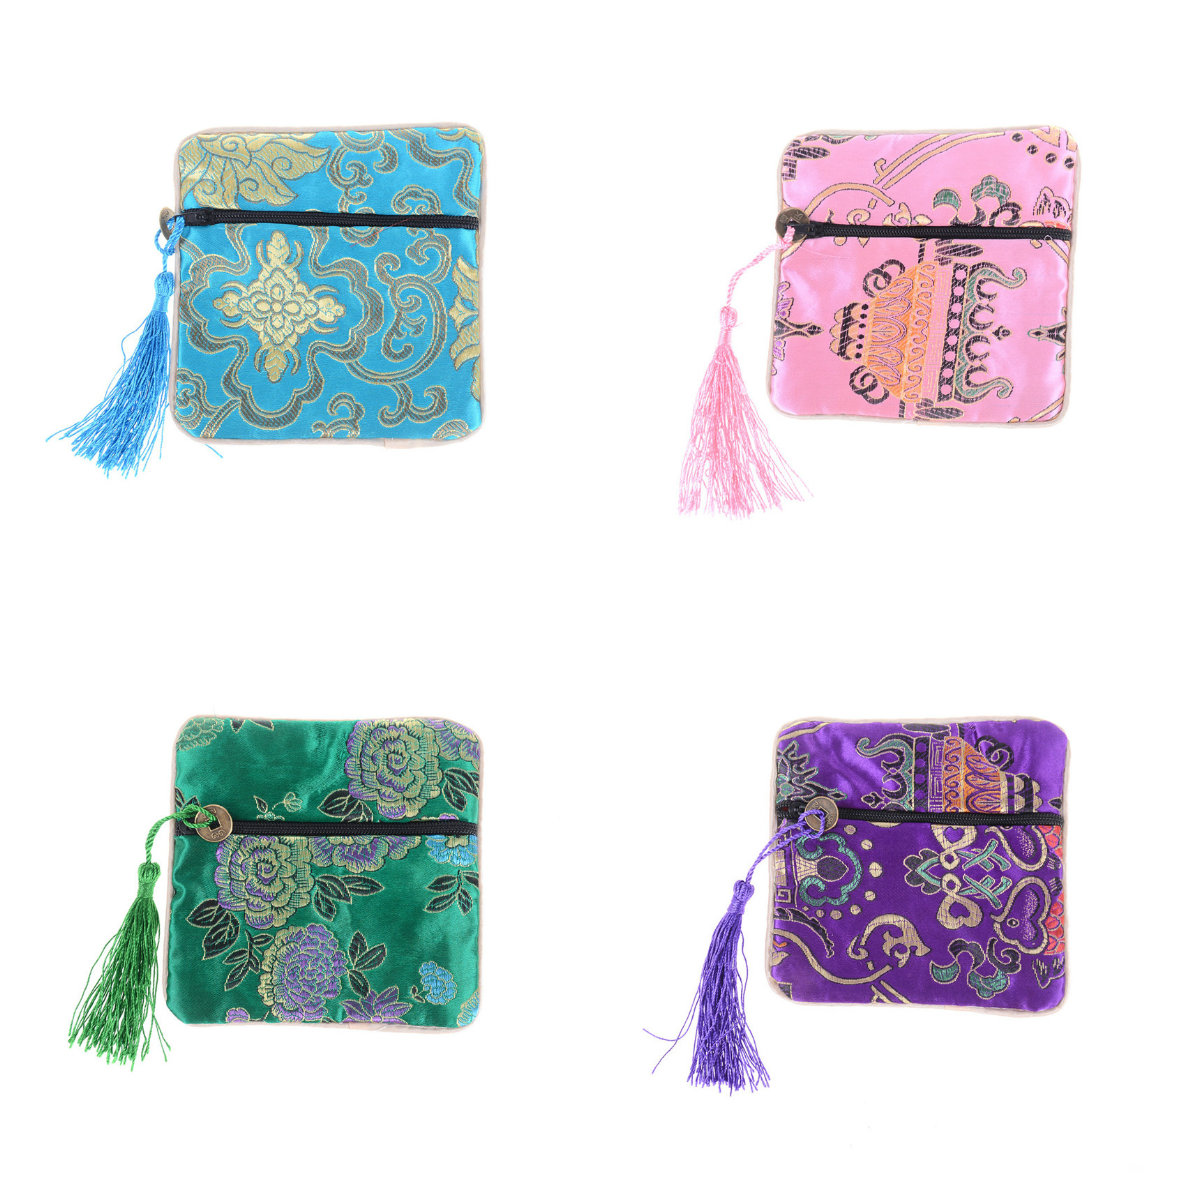 1PCS Silk Jewelry Chinese Coin Tassel Zipper Pouch Bags Wedding Party Gift Sundries Storage Home Storage Organizer Bag